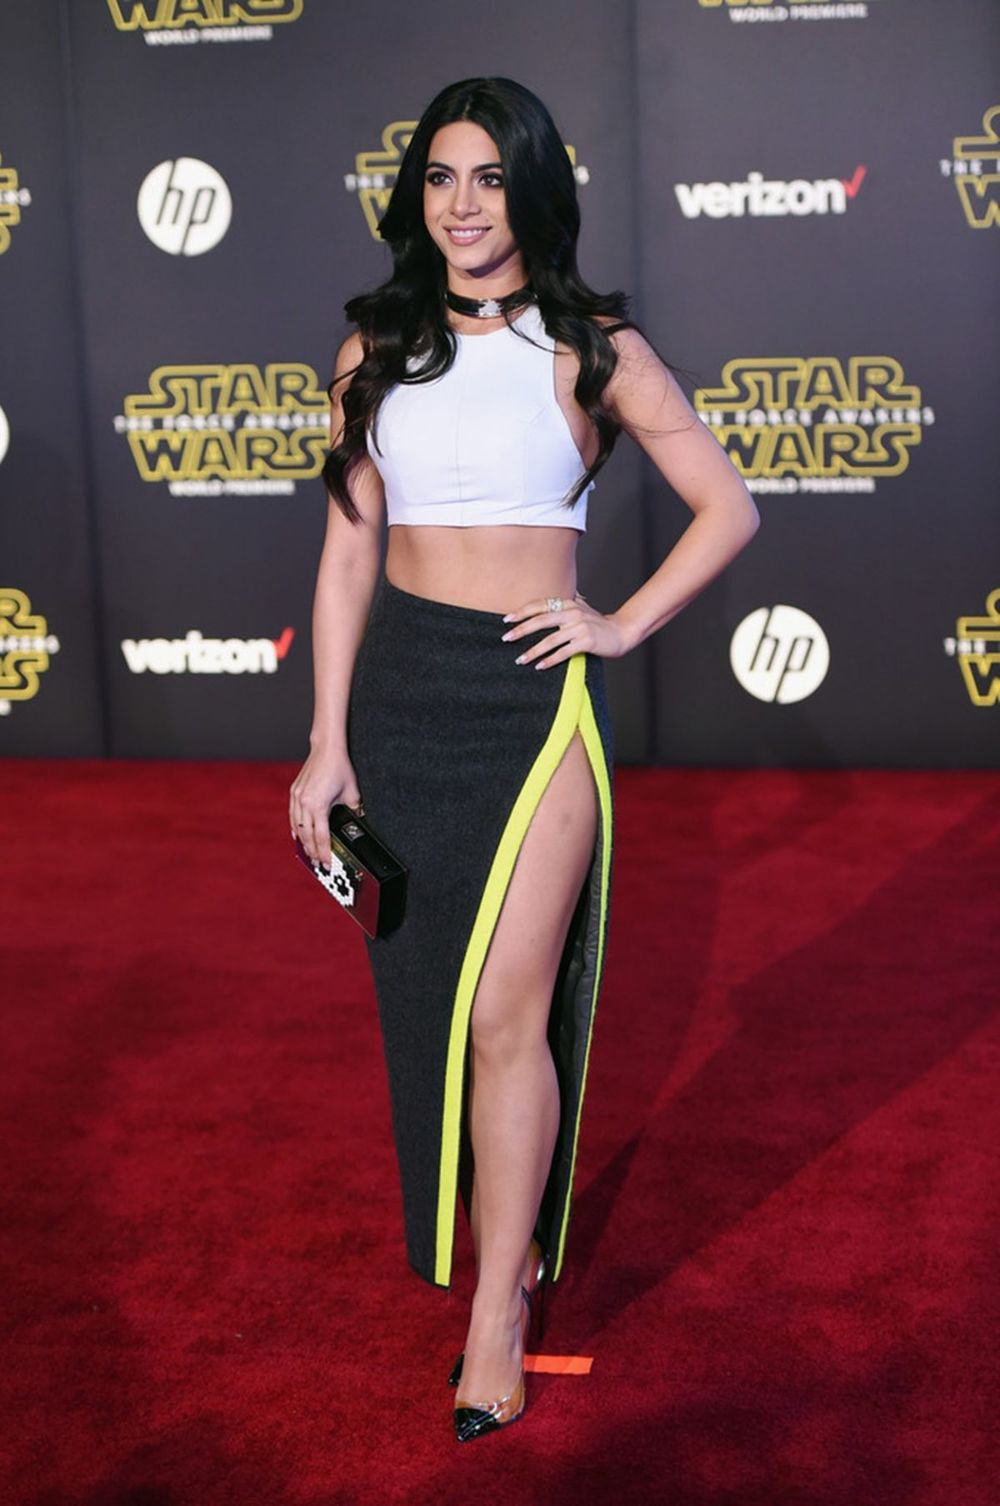 emeraude-toubia-at-star-wars-episode-vii-the-force-awakens-premiere-in-hollywood-12-14-2015_1.jpg